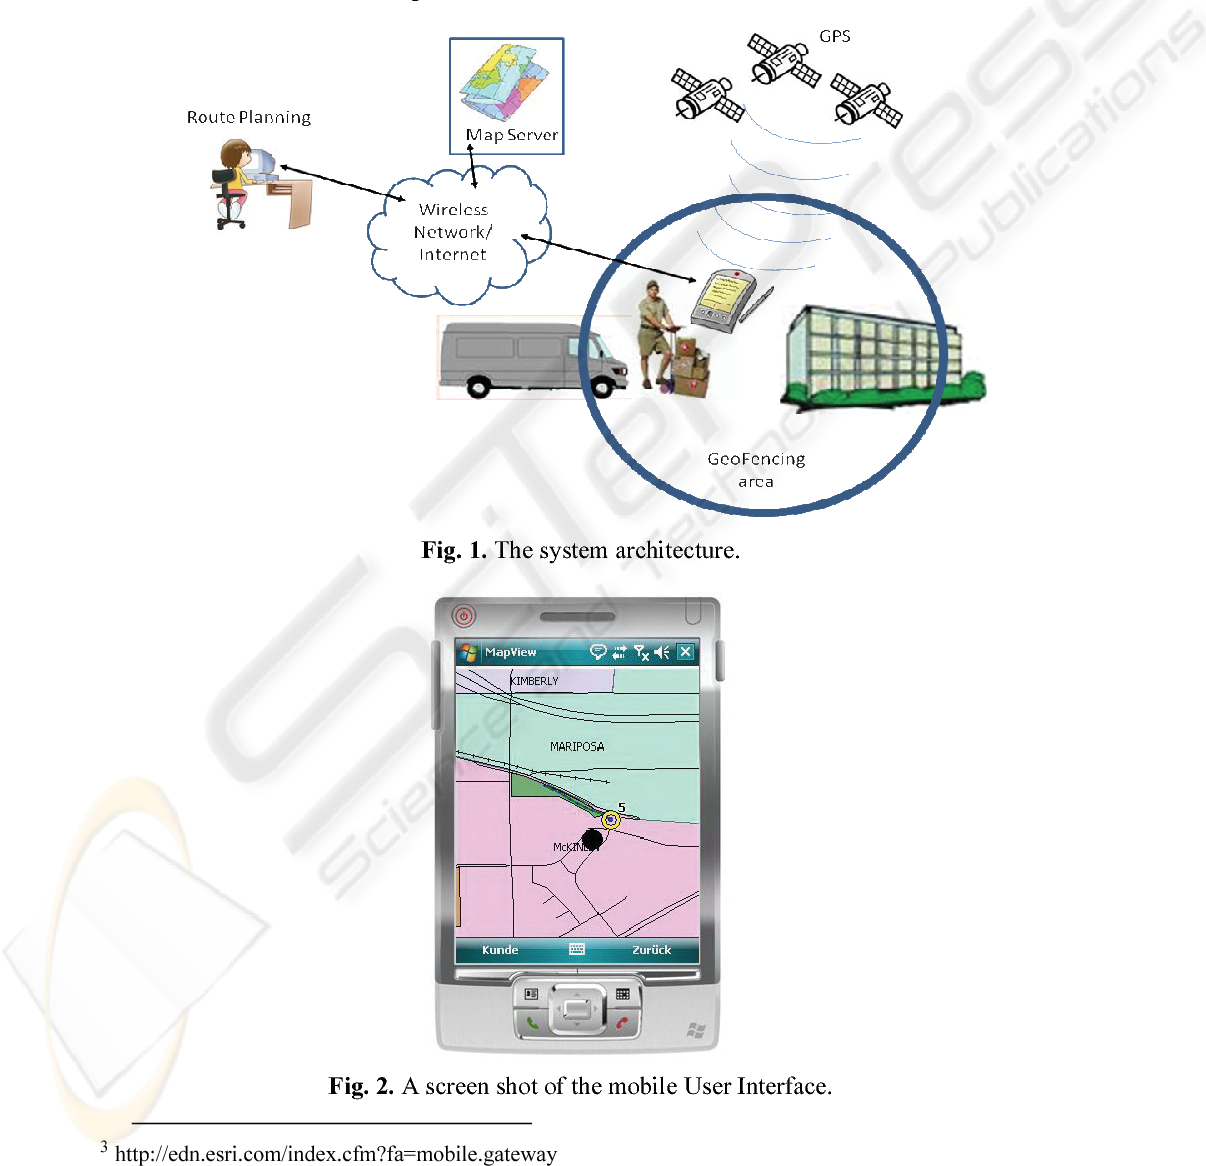 PDF] Using GeoFencing as a Means to Support Flexible Real